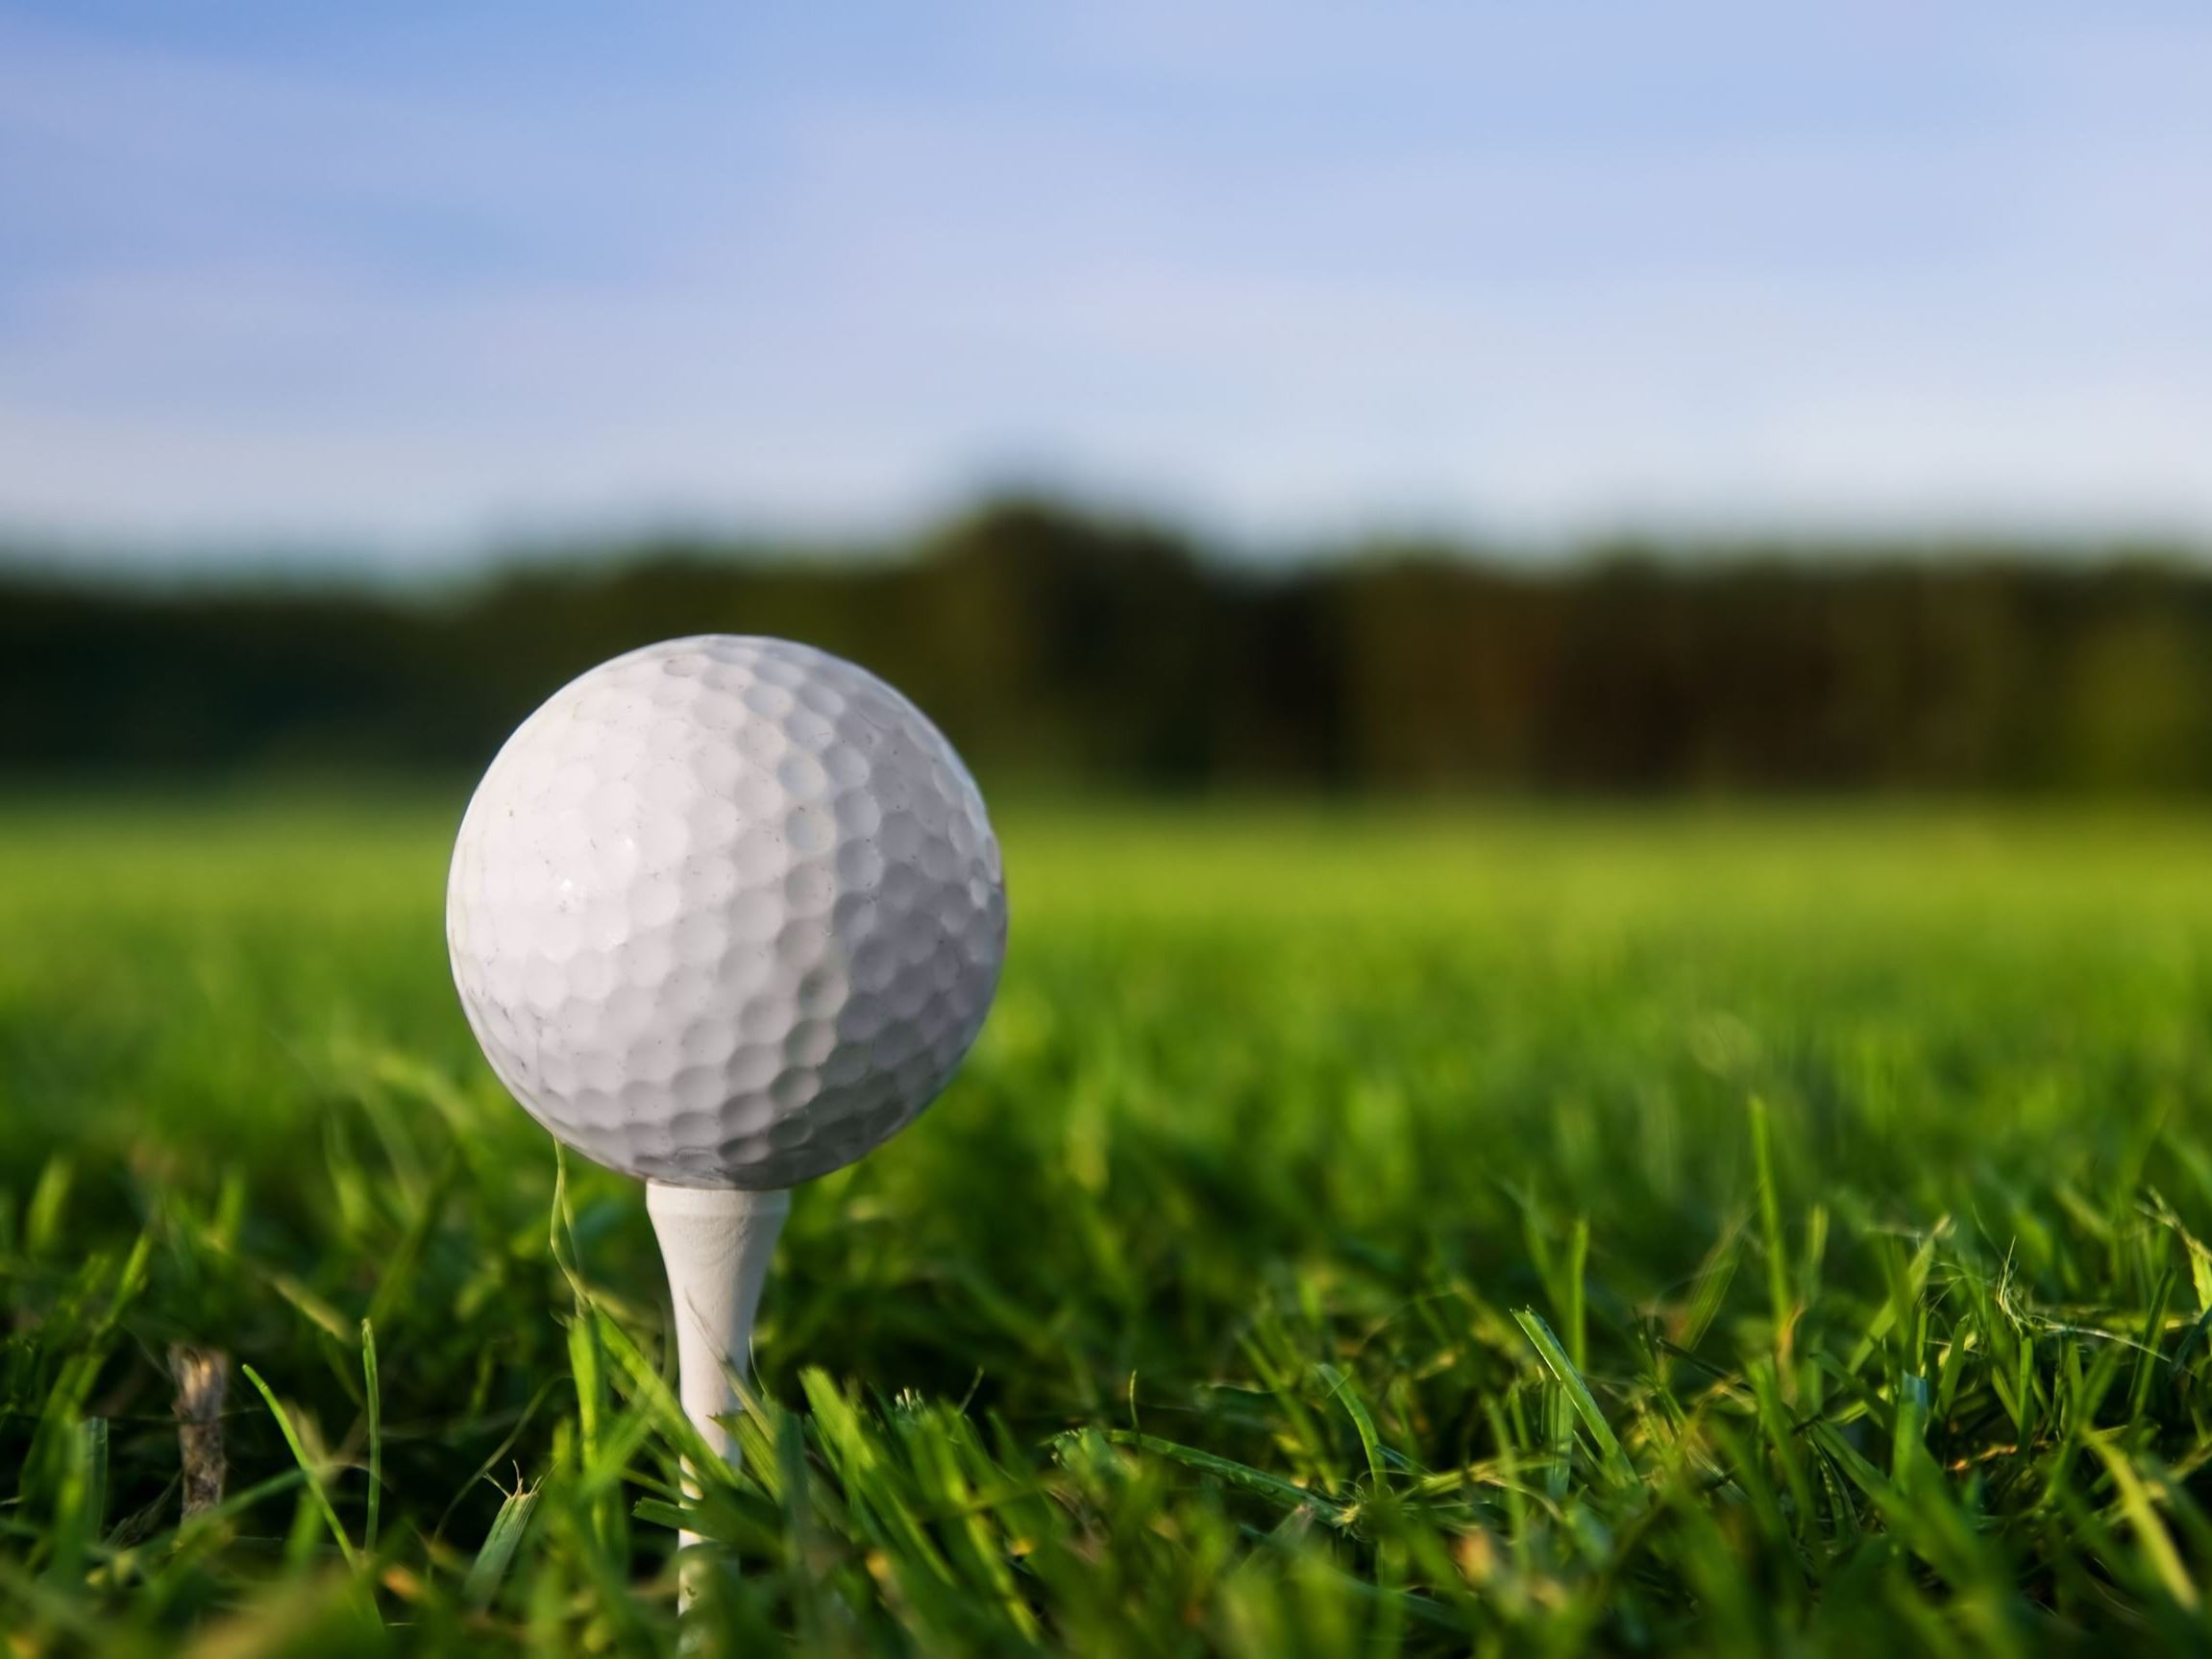 bigstock-Golf-ball-on-tee-Green-grass--18950852